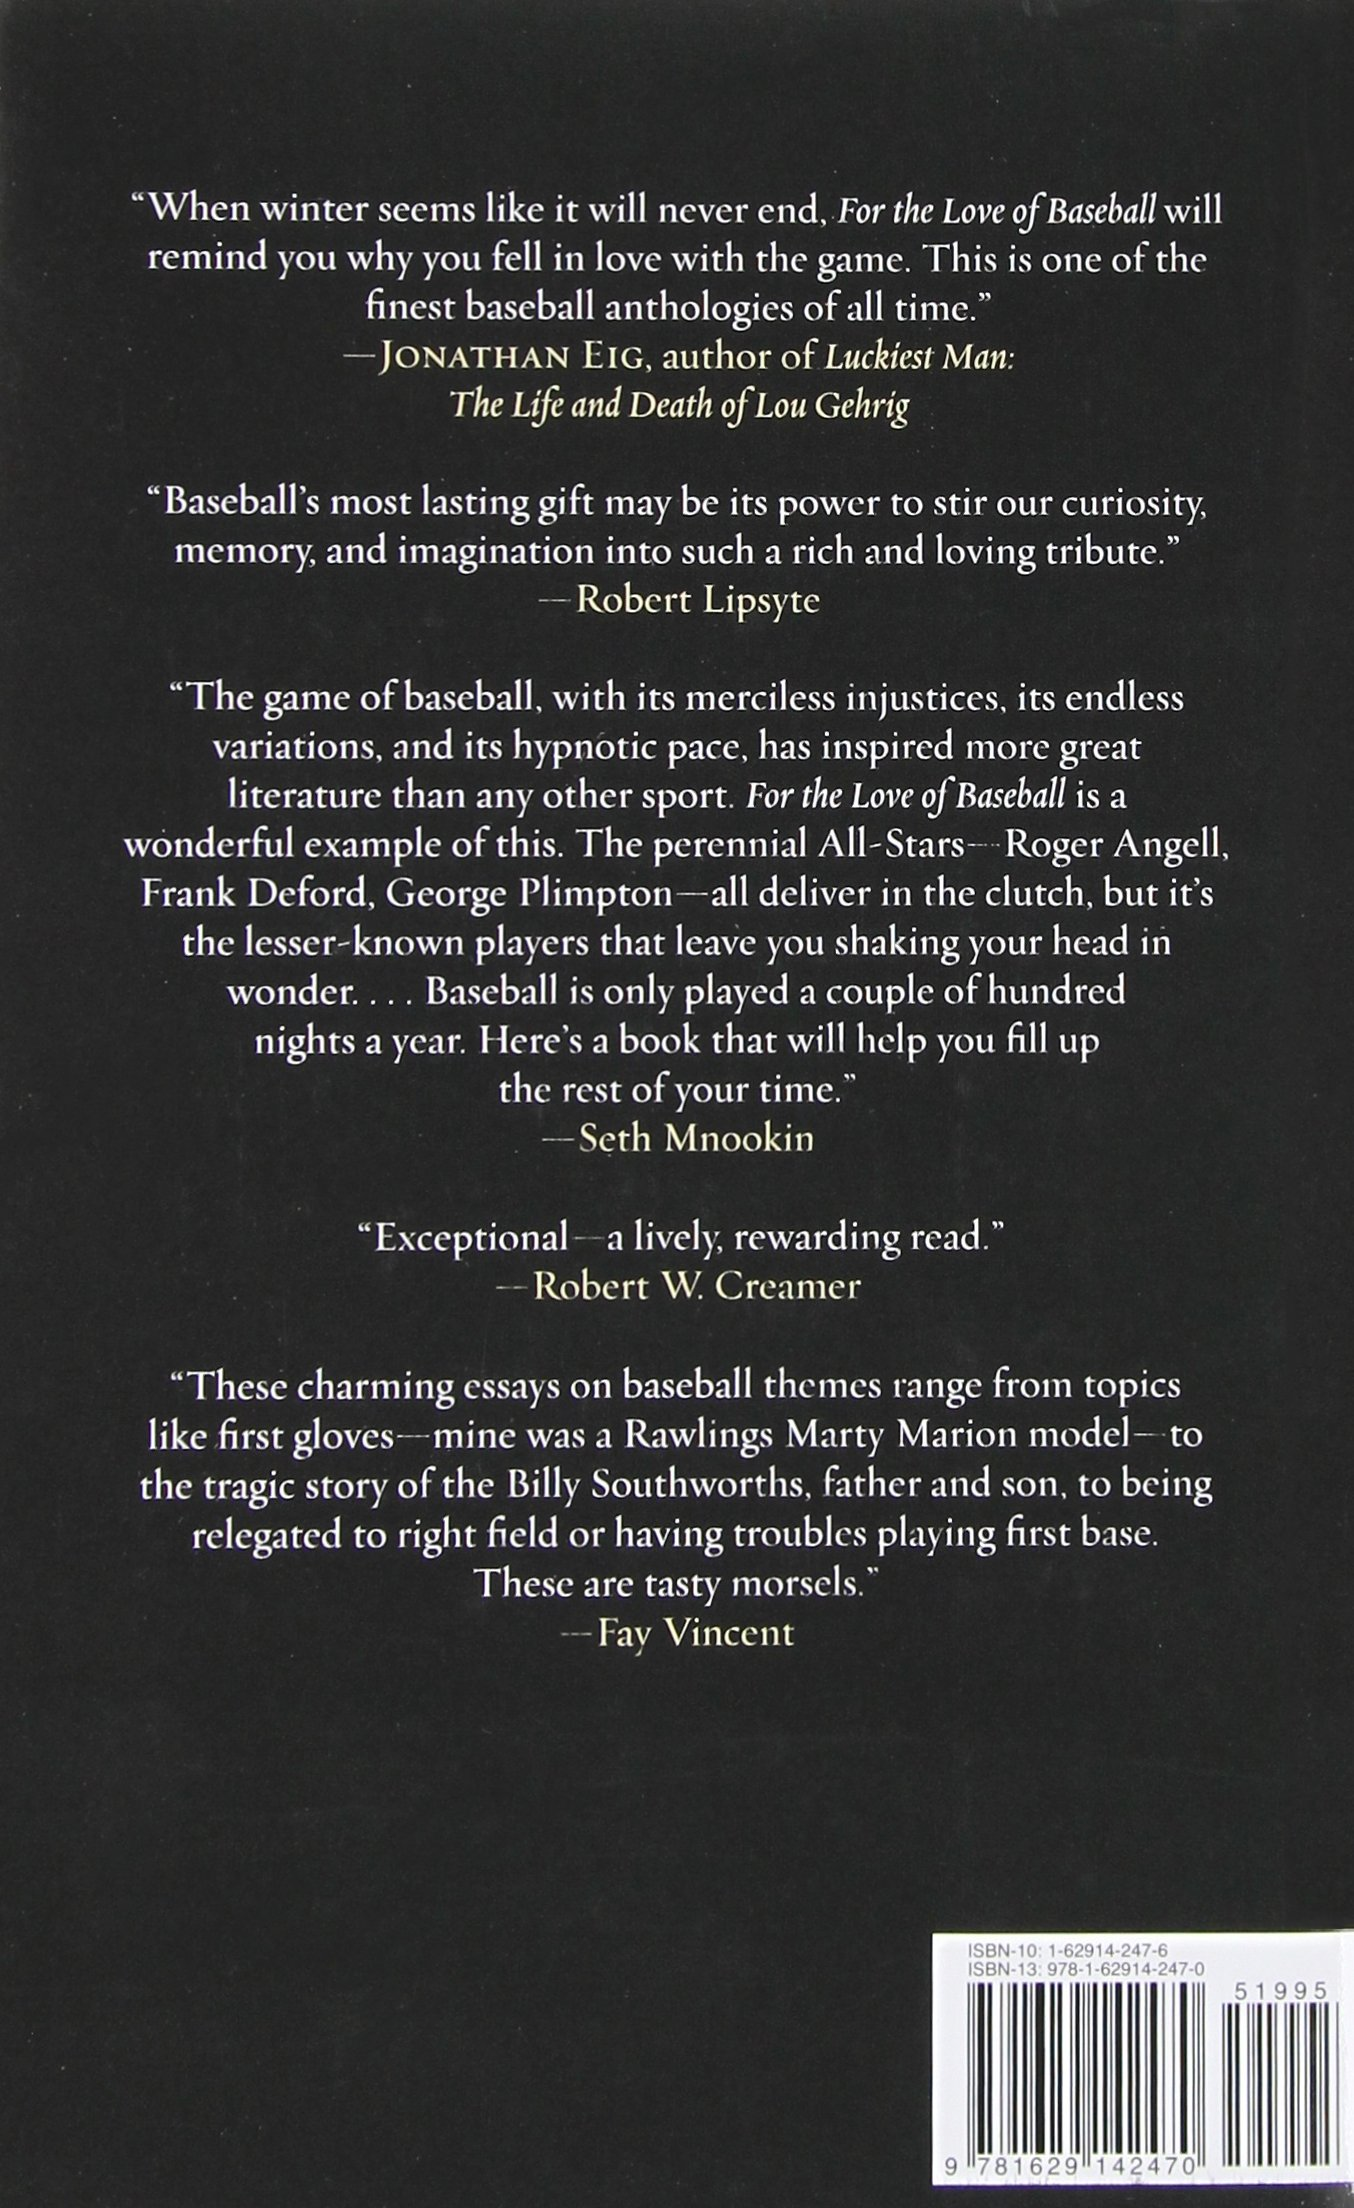 for the love of baseball a celebration of the game that connects for the love of baseball a celebration of the game that connects us all lee gutkind andrew blauner yogi berra 9781629142470 com books